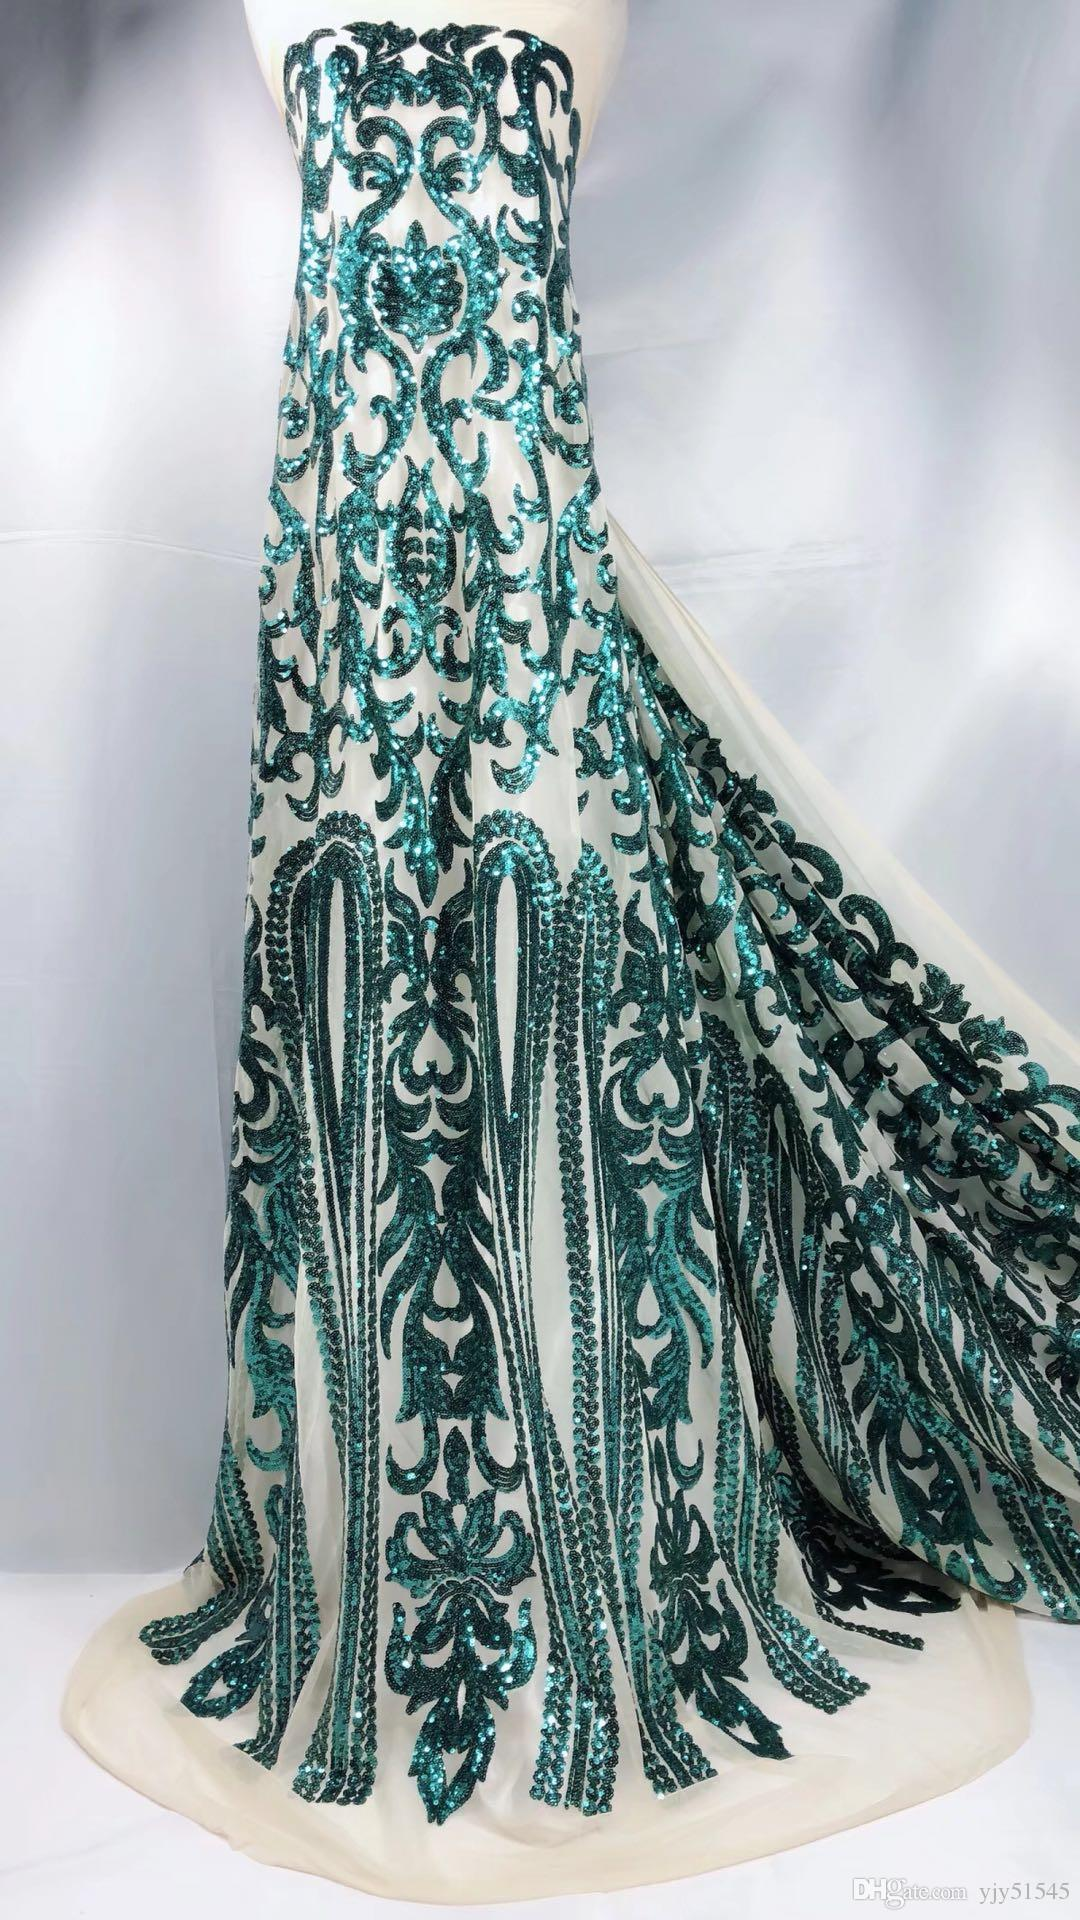 TNY1009 5yards/pc shining African French lace fabric sequins lace fabric with gorgeous embroidery for party dress